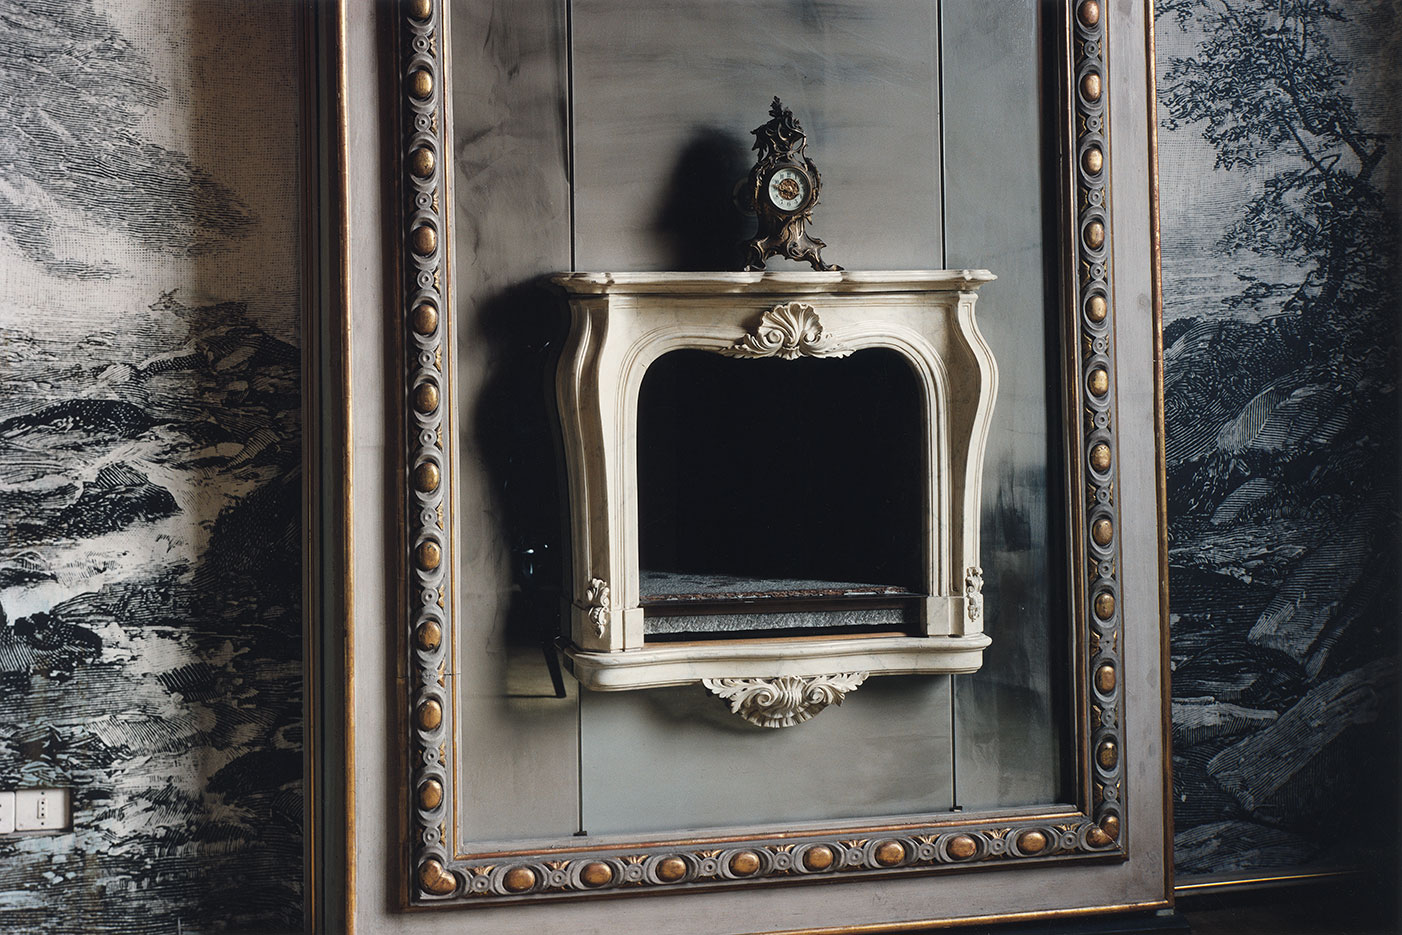 The fireplace. Designed by Mollino himself, framed by a mirror which has become matte over time. On the background wall, the pictures of a peaceful nature create the illusion of a limitless room......